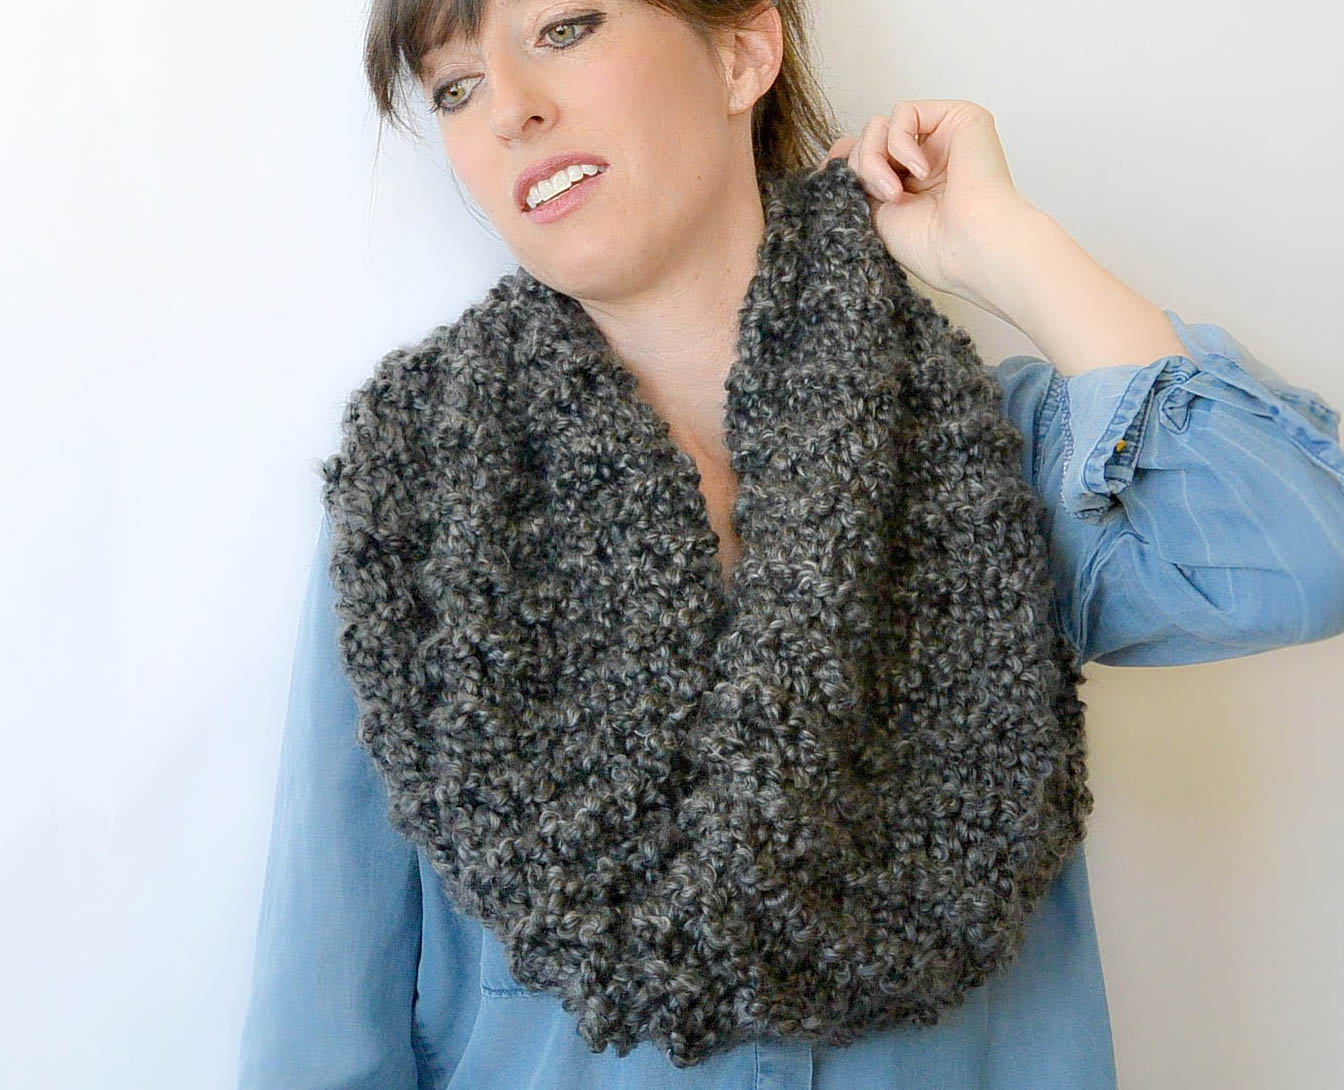 Knitting Pattern For Beginner : TALL Eiffel Cowl - Beginner Knitting Pattern   Mama In A Stitch